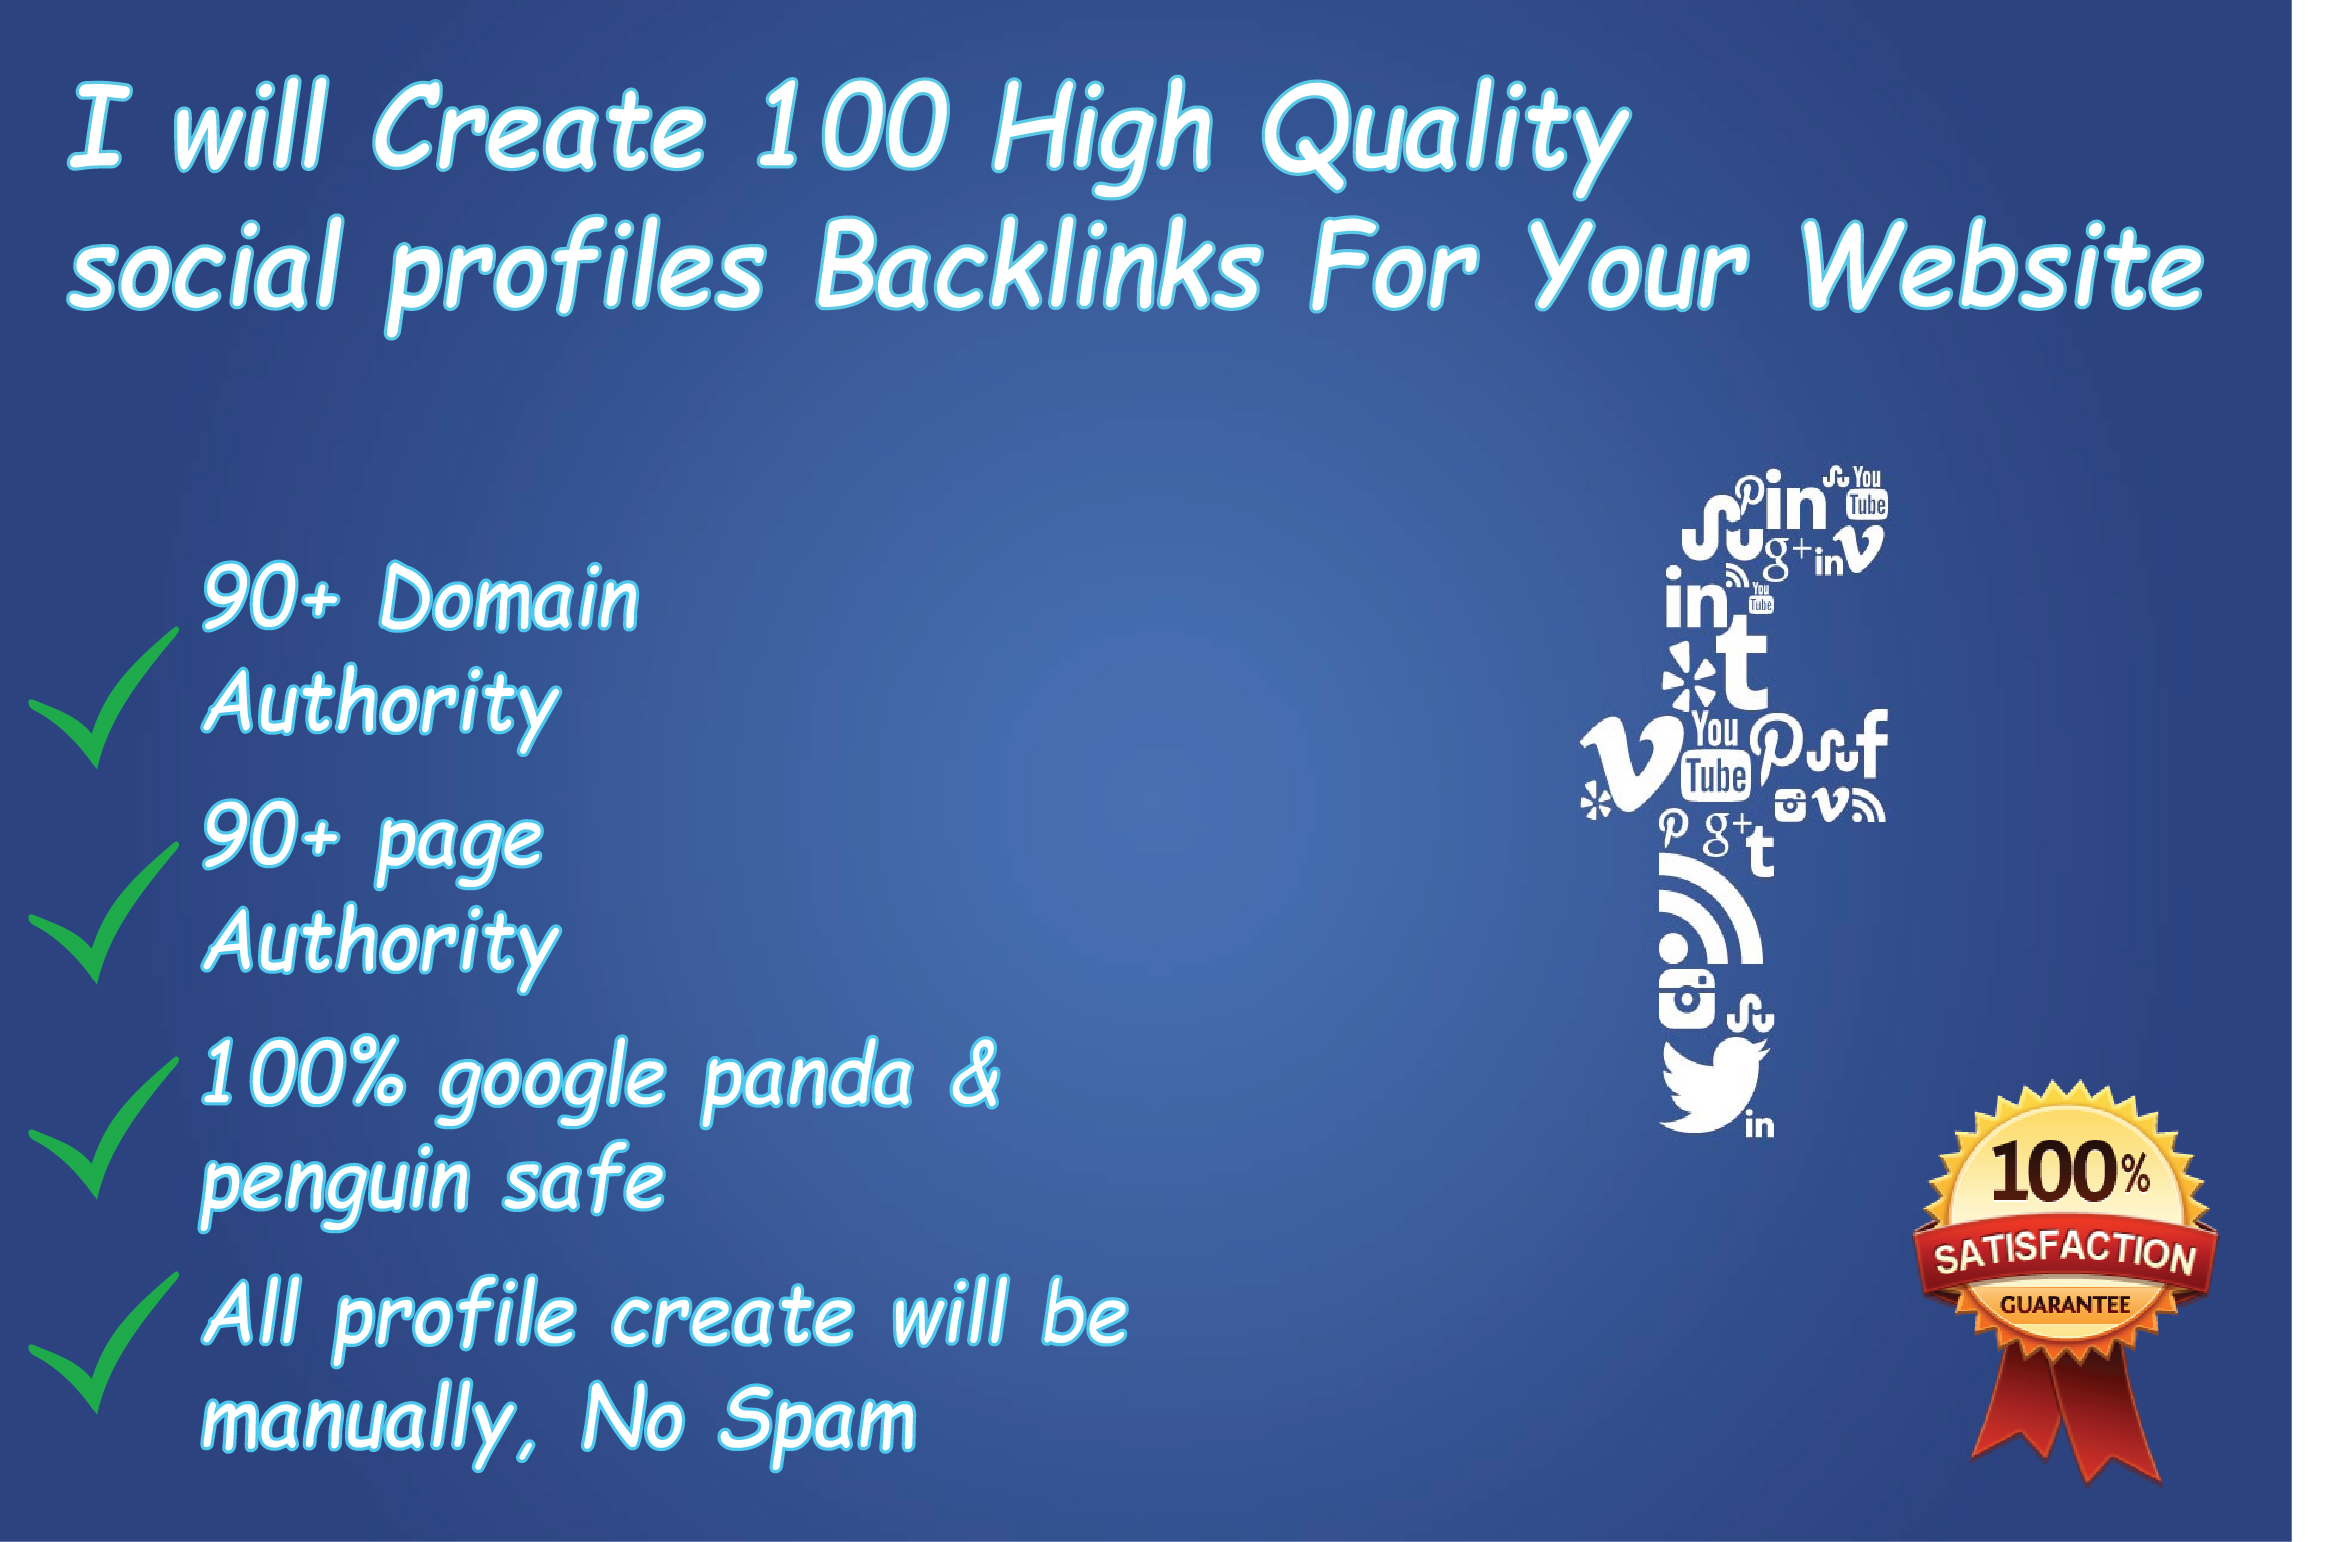 I will create top 100 high quality social profile backlinks for your website